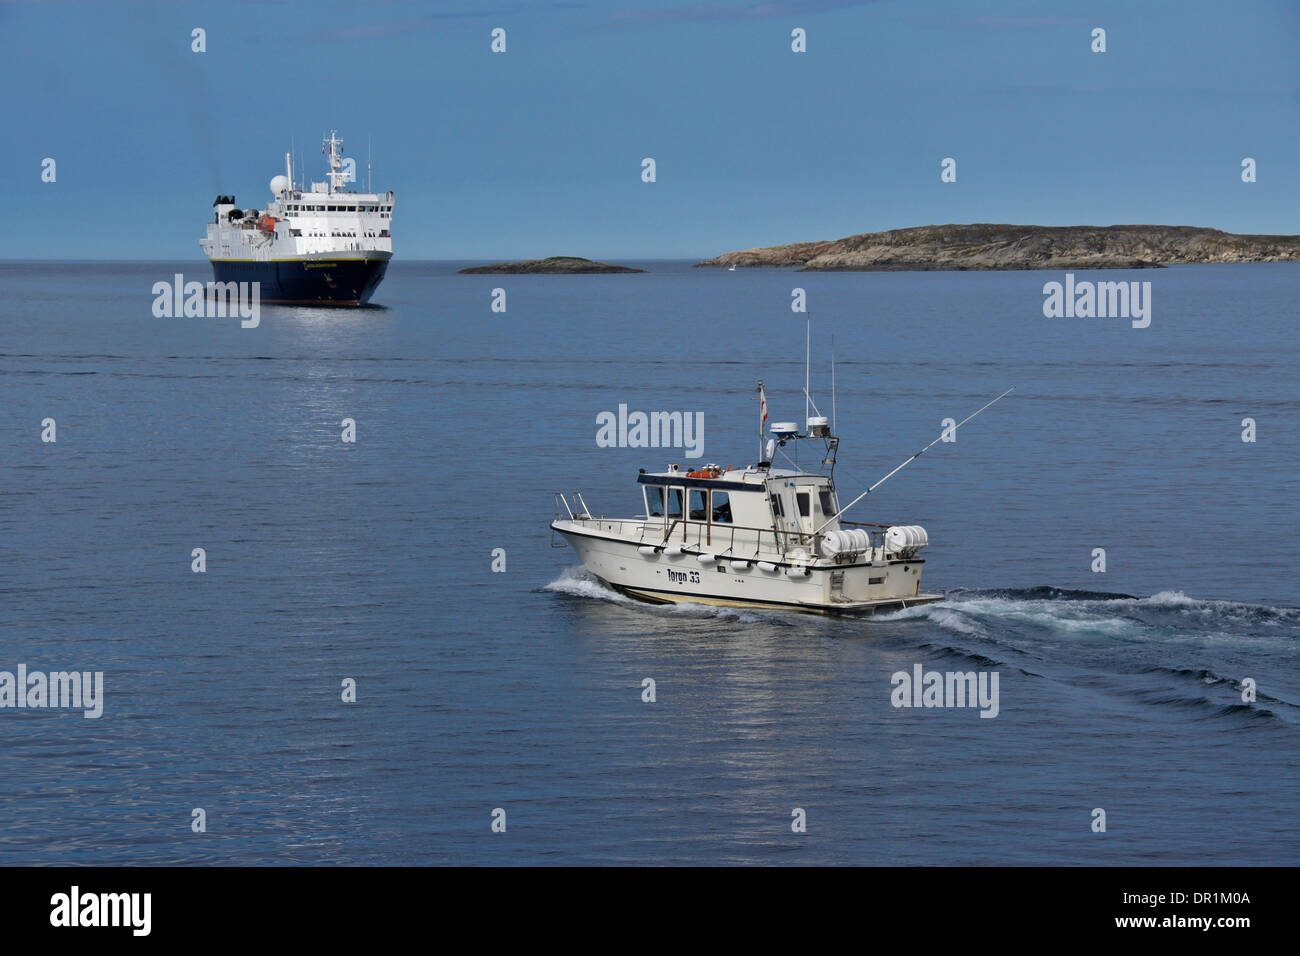 Fishing boat and National Geographic Explorer cruise ship in harbor, Sisimiut (Holsteinsborg), West Greenland - Stock Image